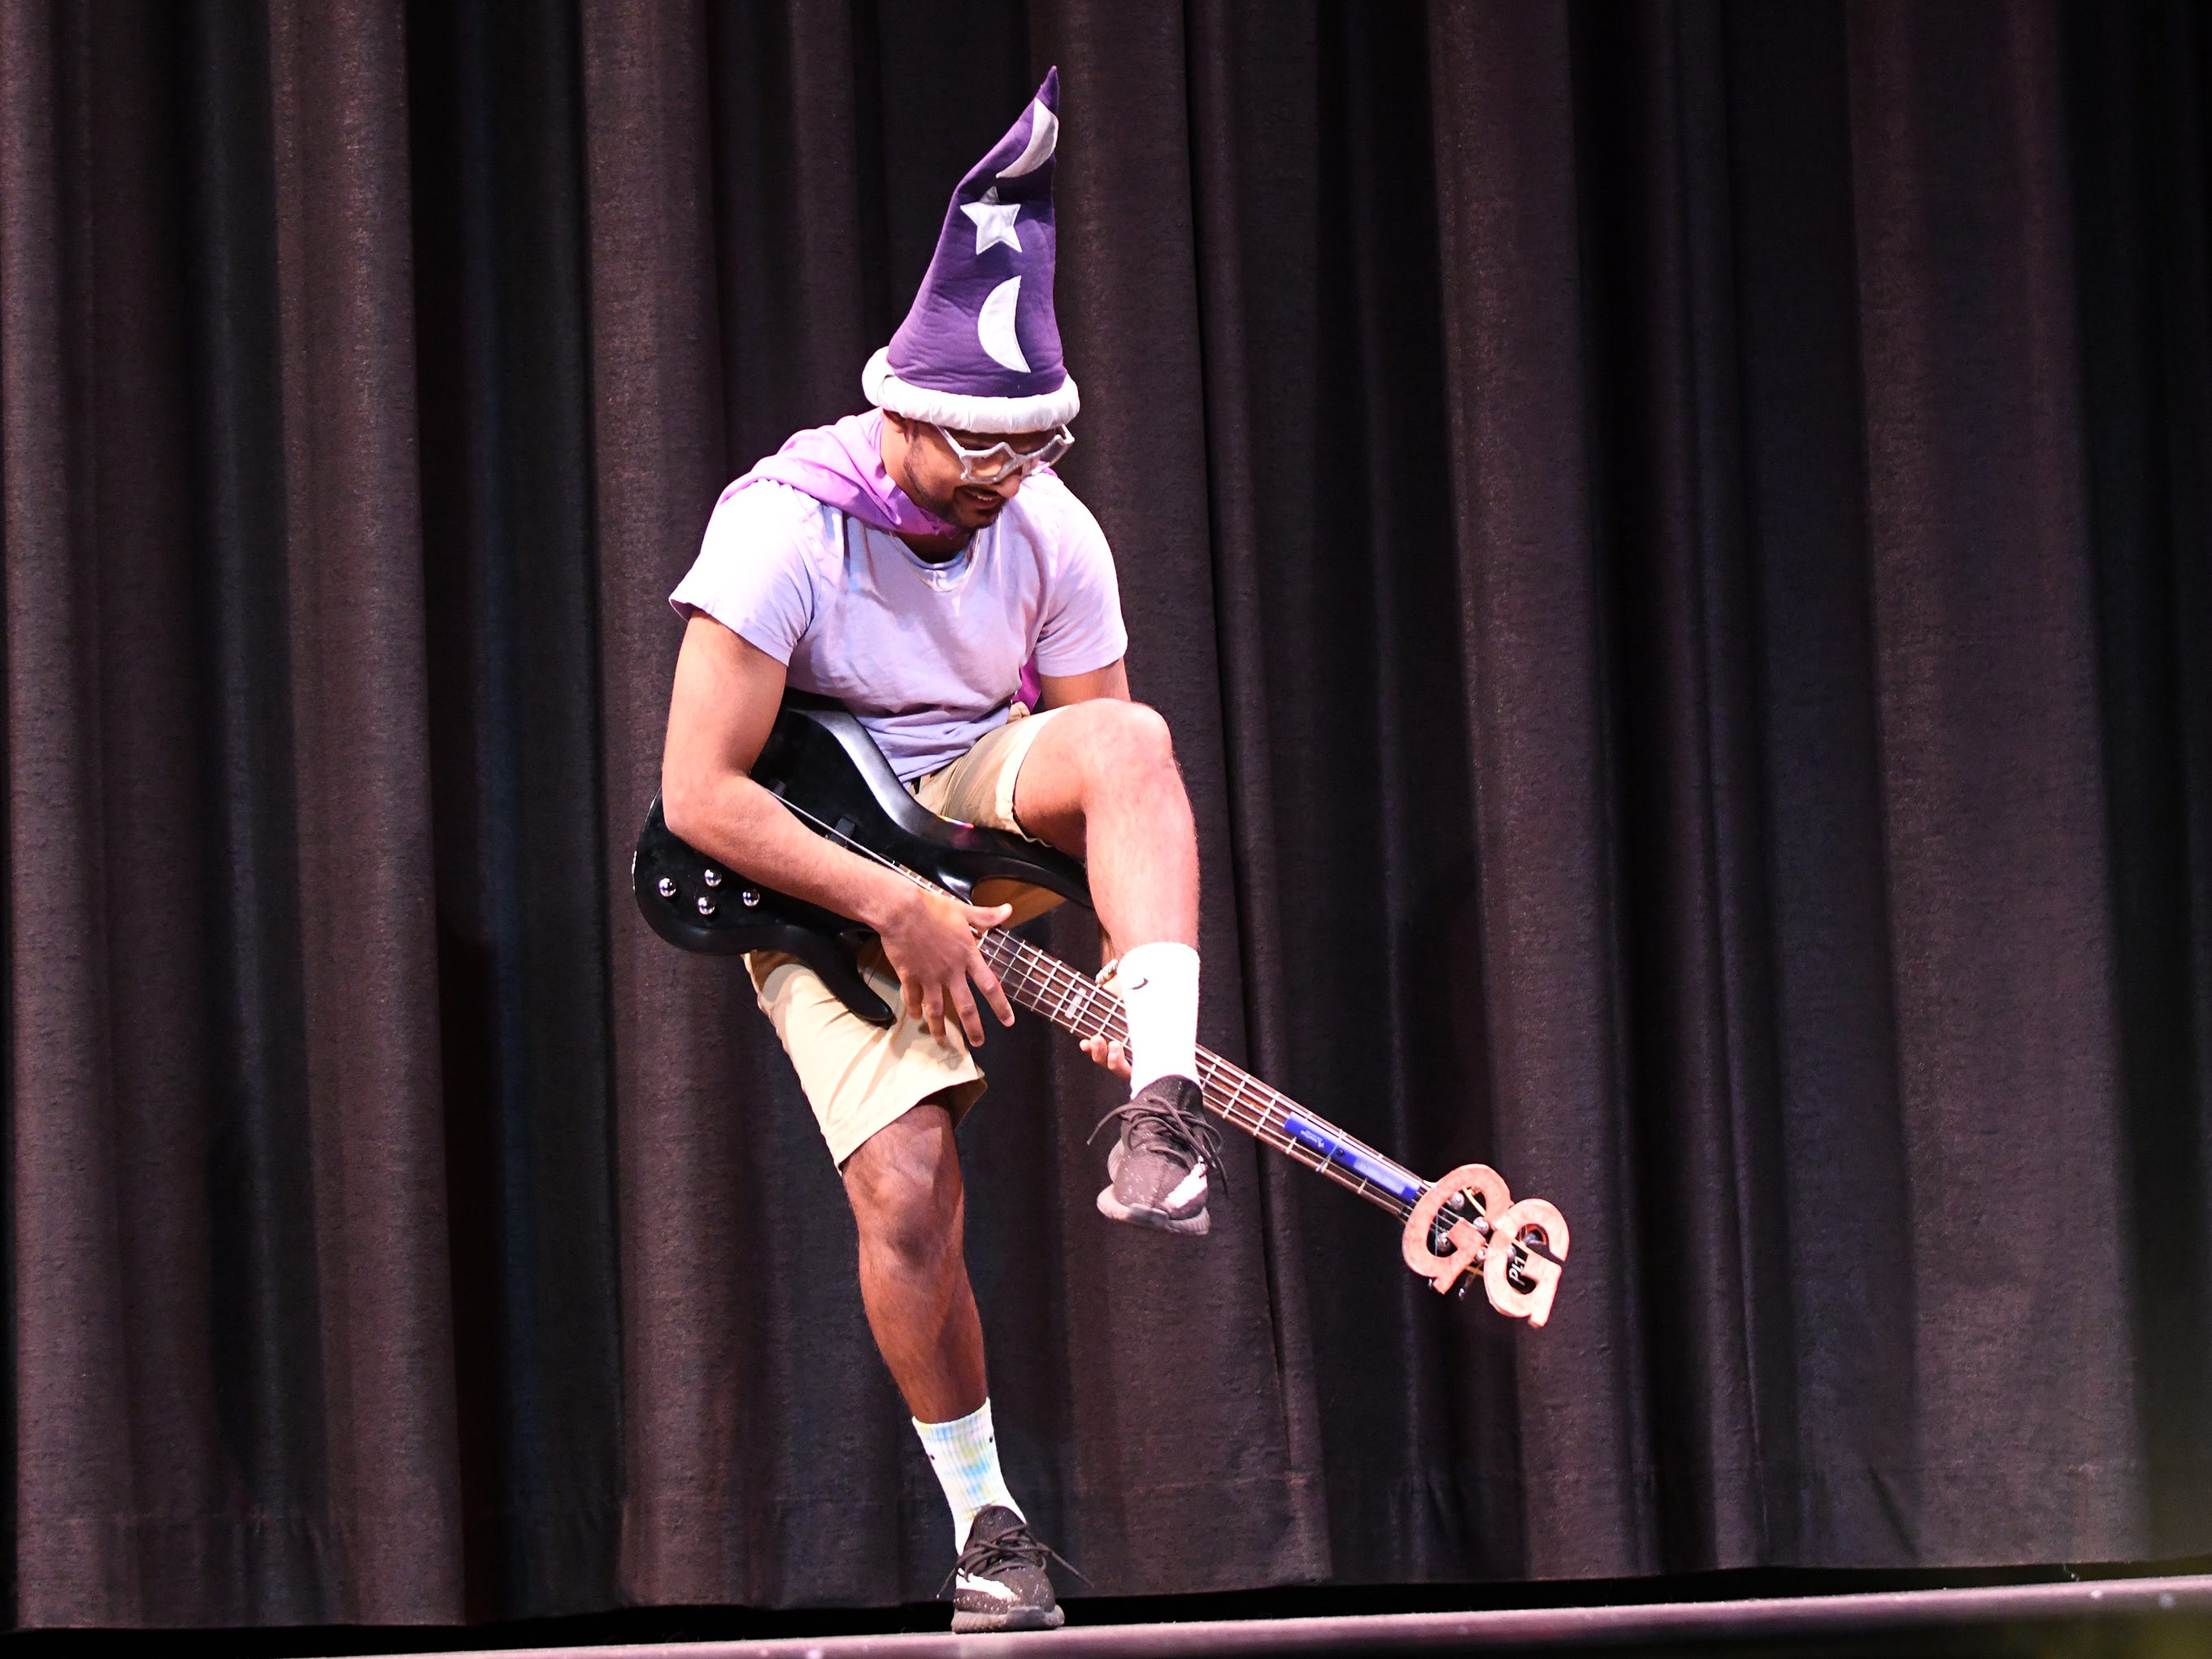 Vedant Patel performs during the talent portion of Mr. Vineland 2019 at Vineland High School on Thursday, January 10.